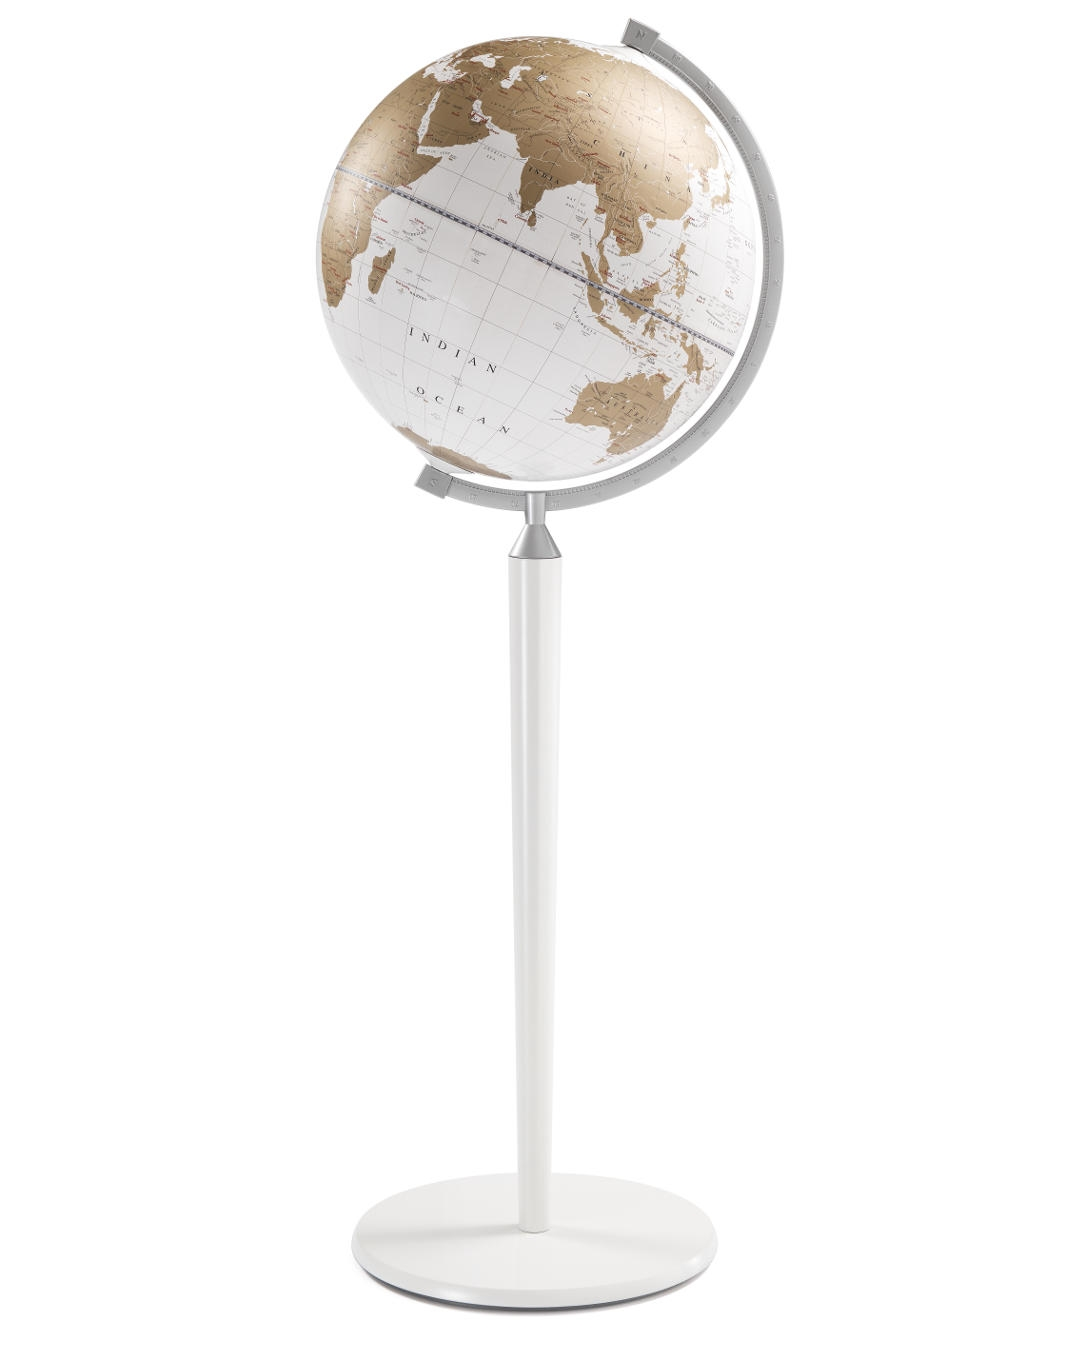 majestic diam floors integrated it has portability trolley casters replica floor arezzo nautical globe pin maps with bar wooden in have for to this an easy century stand wrapped new